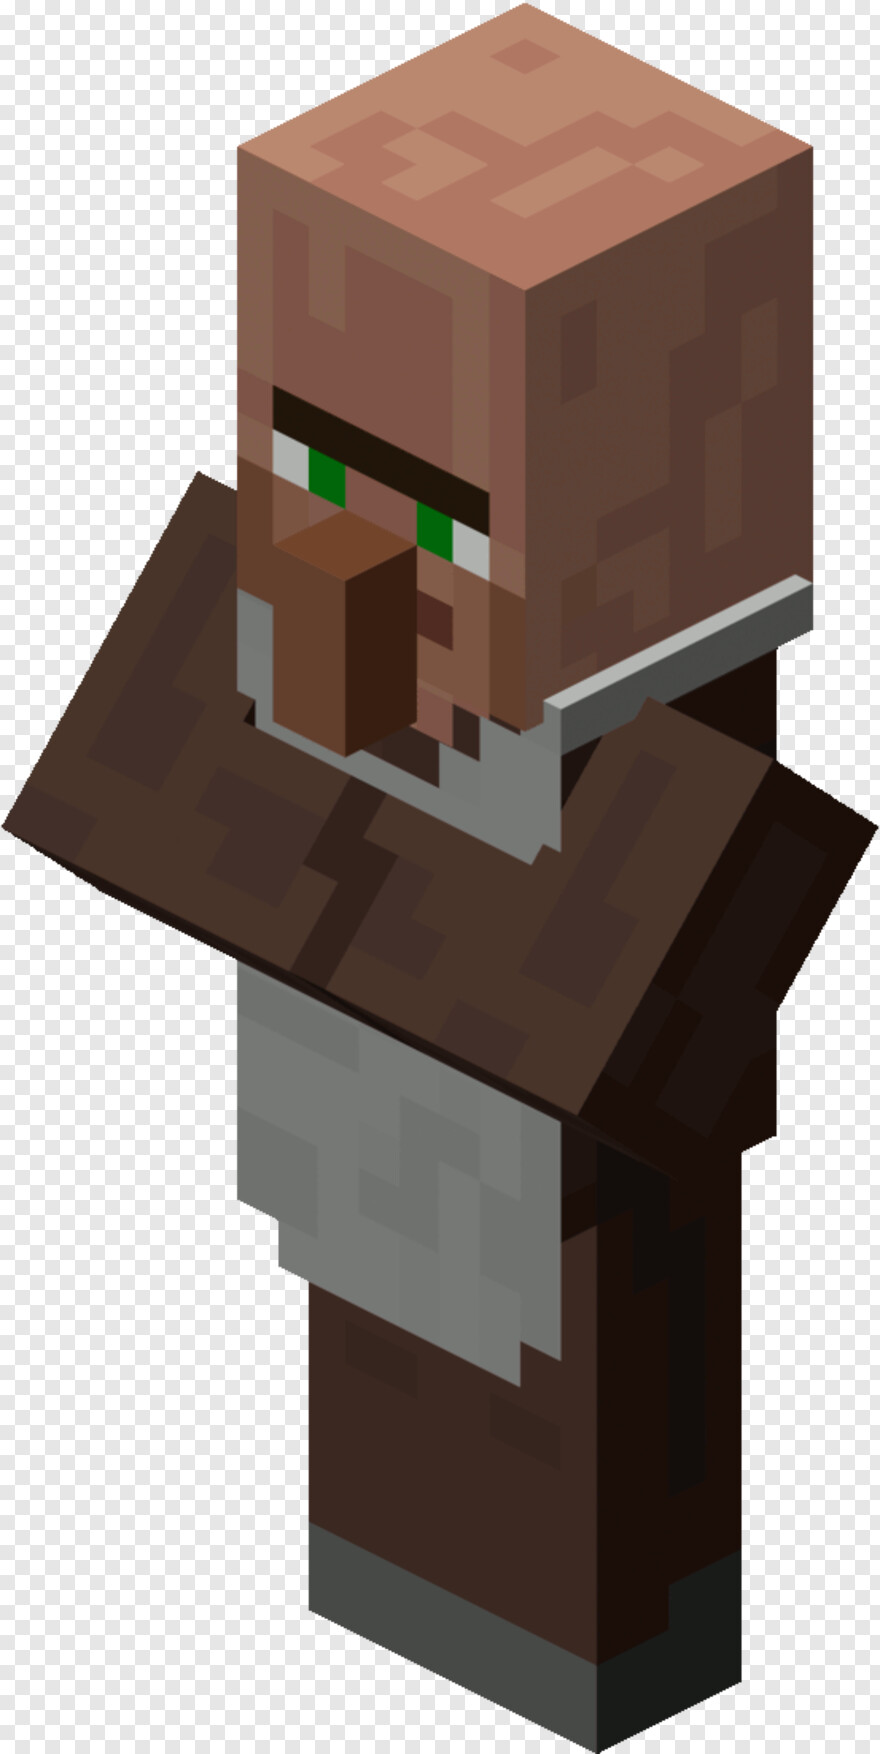 Minecraft Character - Minecraft Villager Png, HD Png Download